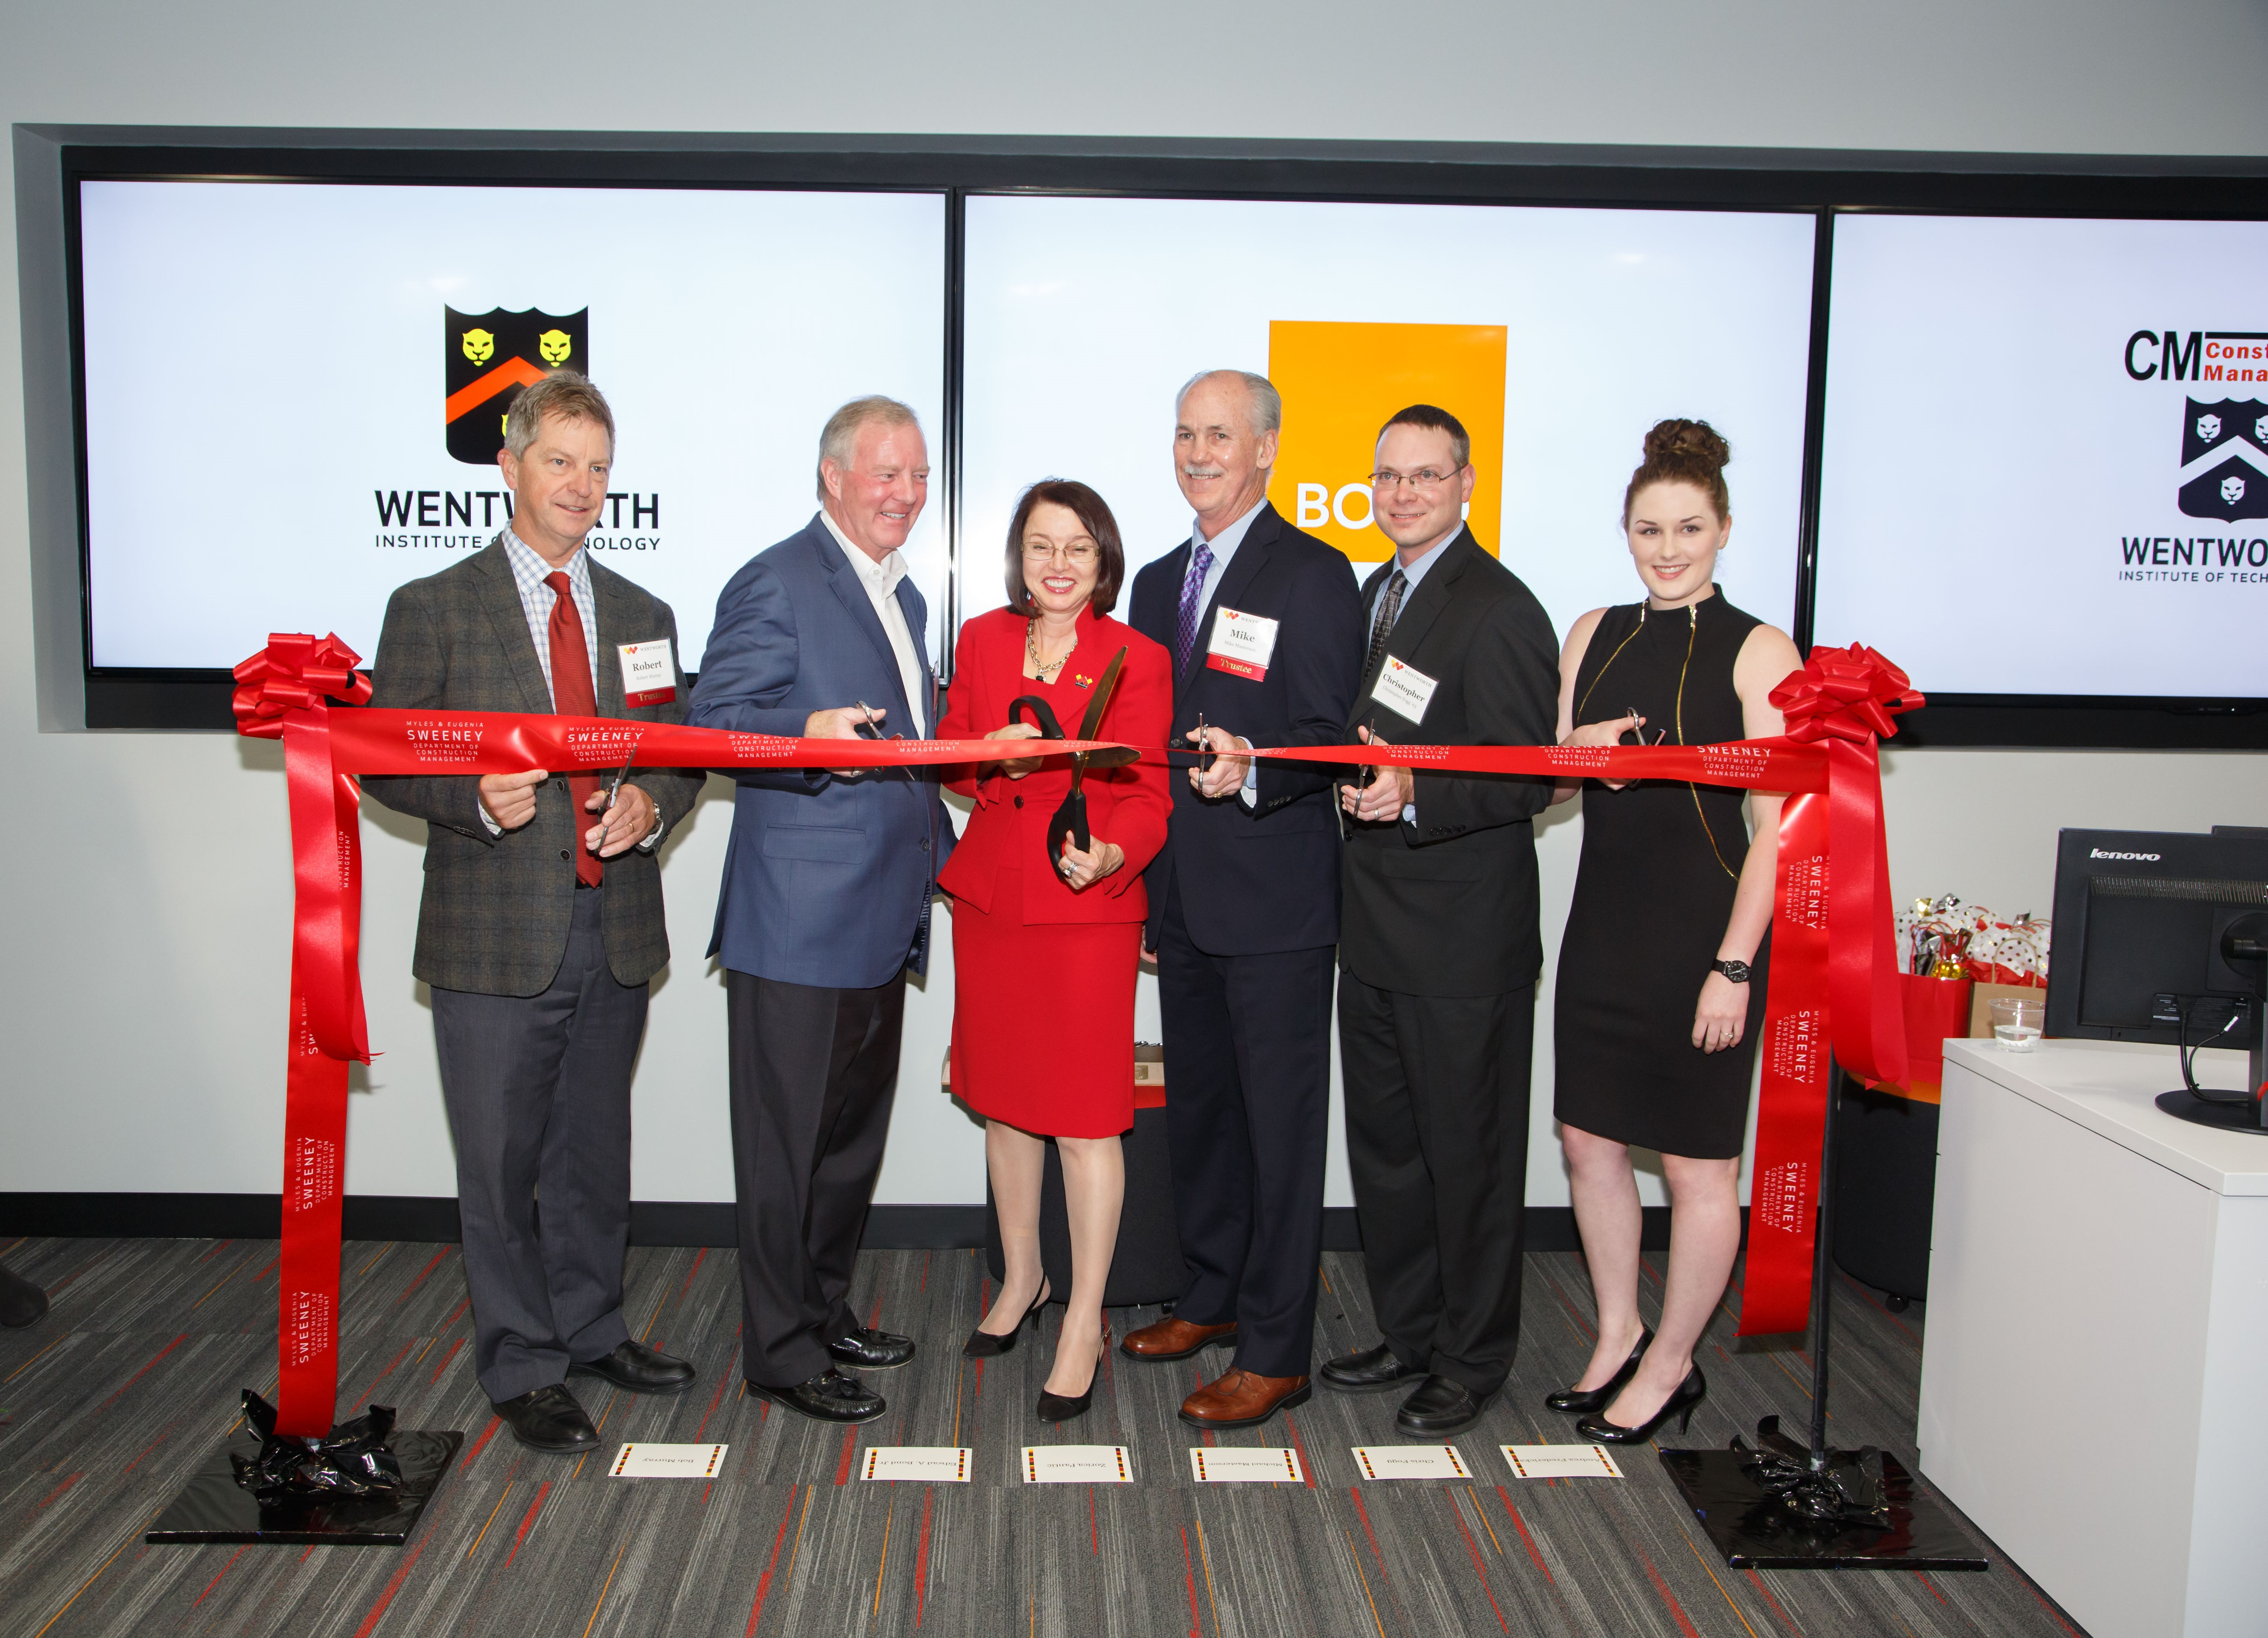 The BOND lab was dedicated on Oct. 13.